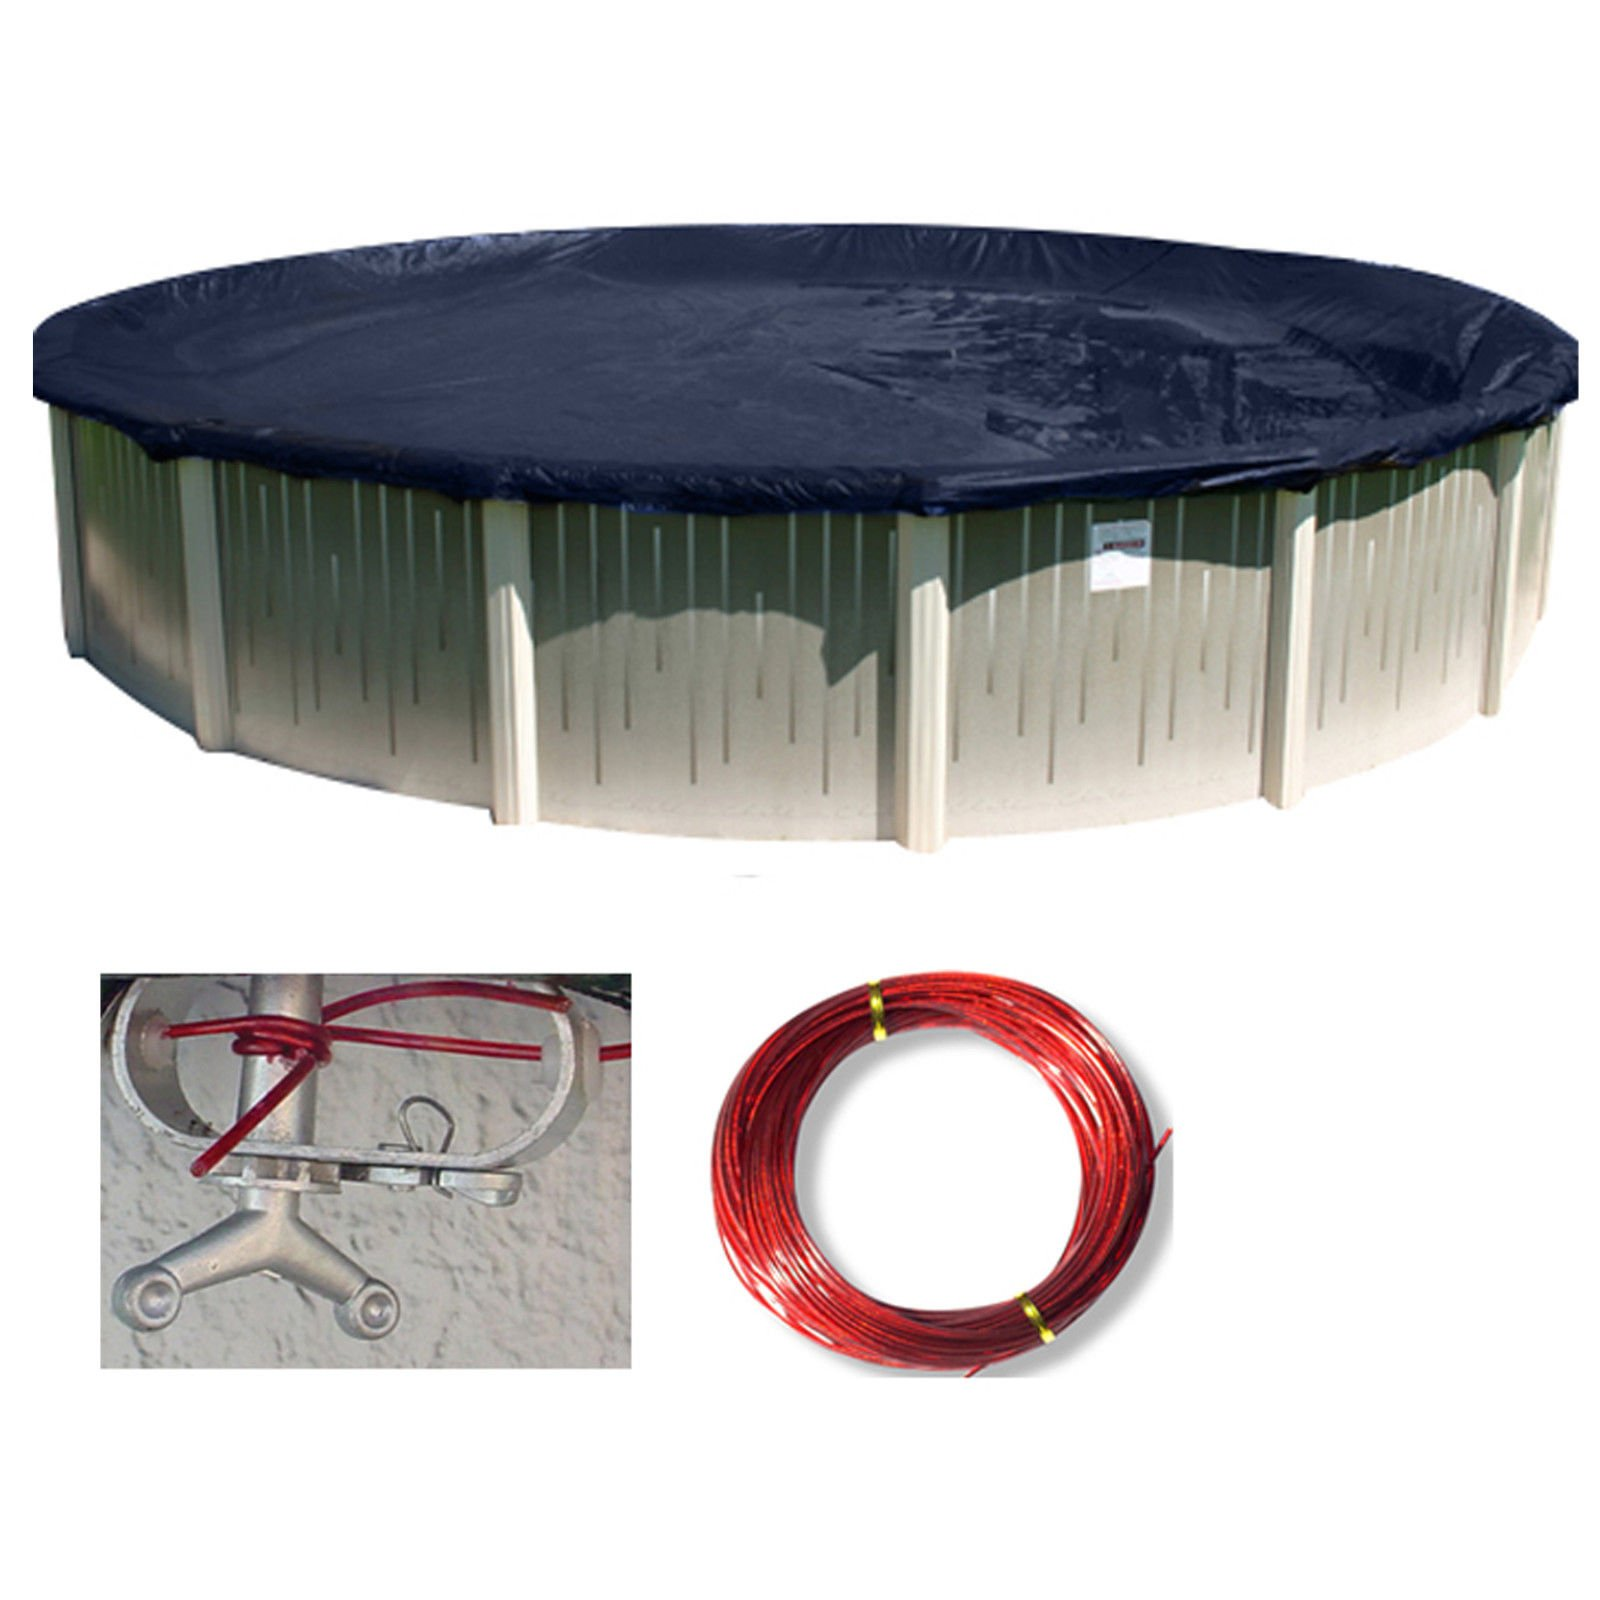 VirtualSurround 24' Round Deluxe Above Ground Swimming Pool Winter Cover